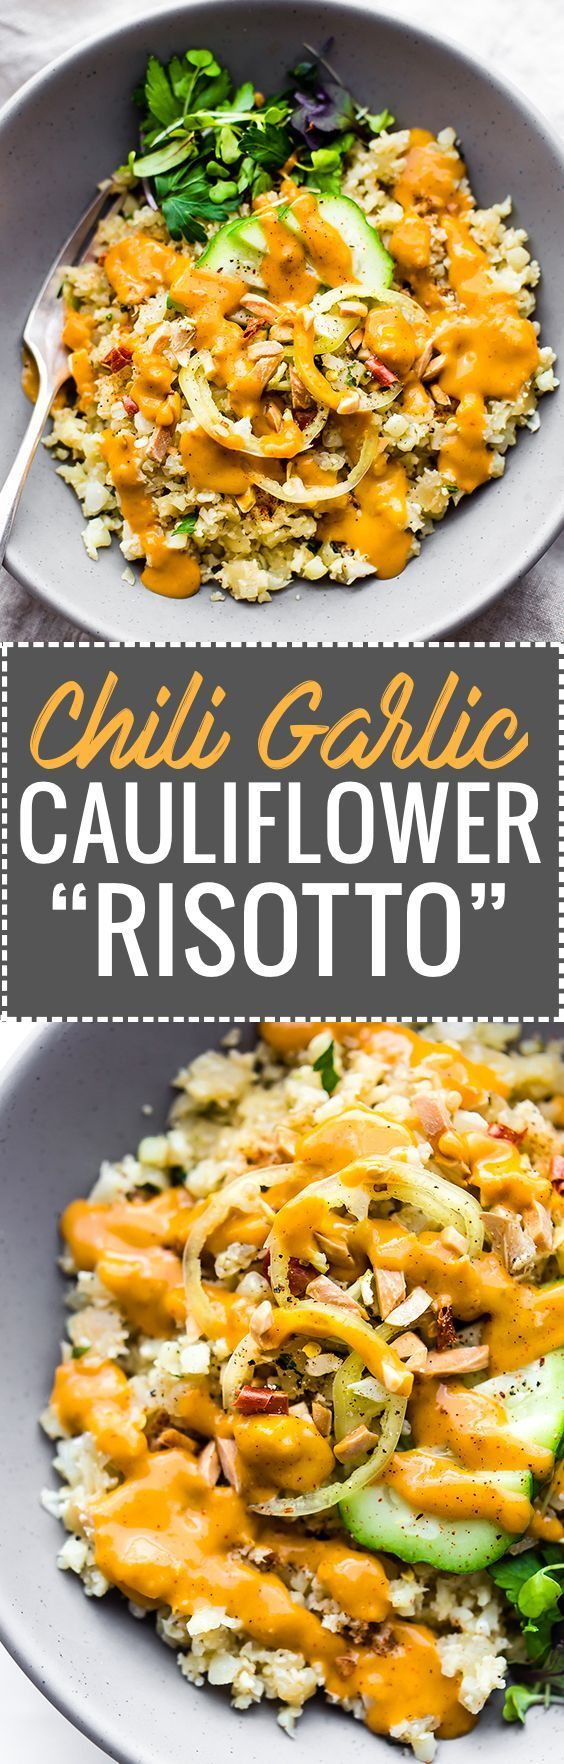 "These Chili Garlic Cauliflower ""Risotto"" Bowls are an easy Paleo dish to satisfy that comfort food craving! A healthy vegan recipe with a spicy sauce. The Cauliflower Rice is the ""risotto"" and is cooked a non dairy (coconut or almond) milk; all in one pan! The sauce is made extra spicy and creamy with chili, garlic, and avocado combined. Great as side or plant based main. Whole30 options included. www.cottercrunch.com @cottercrunch"